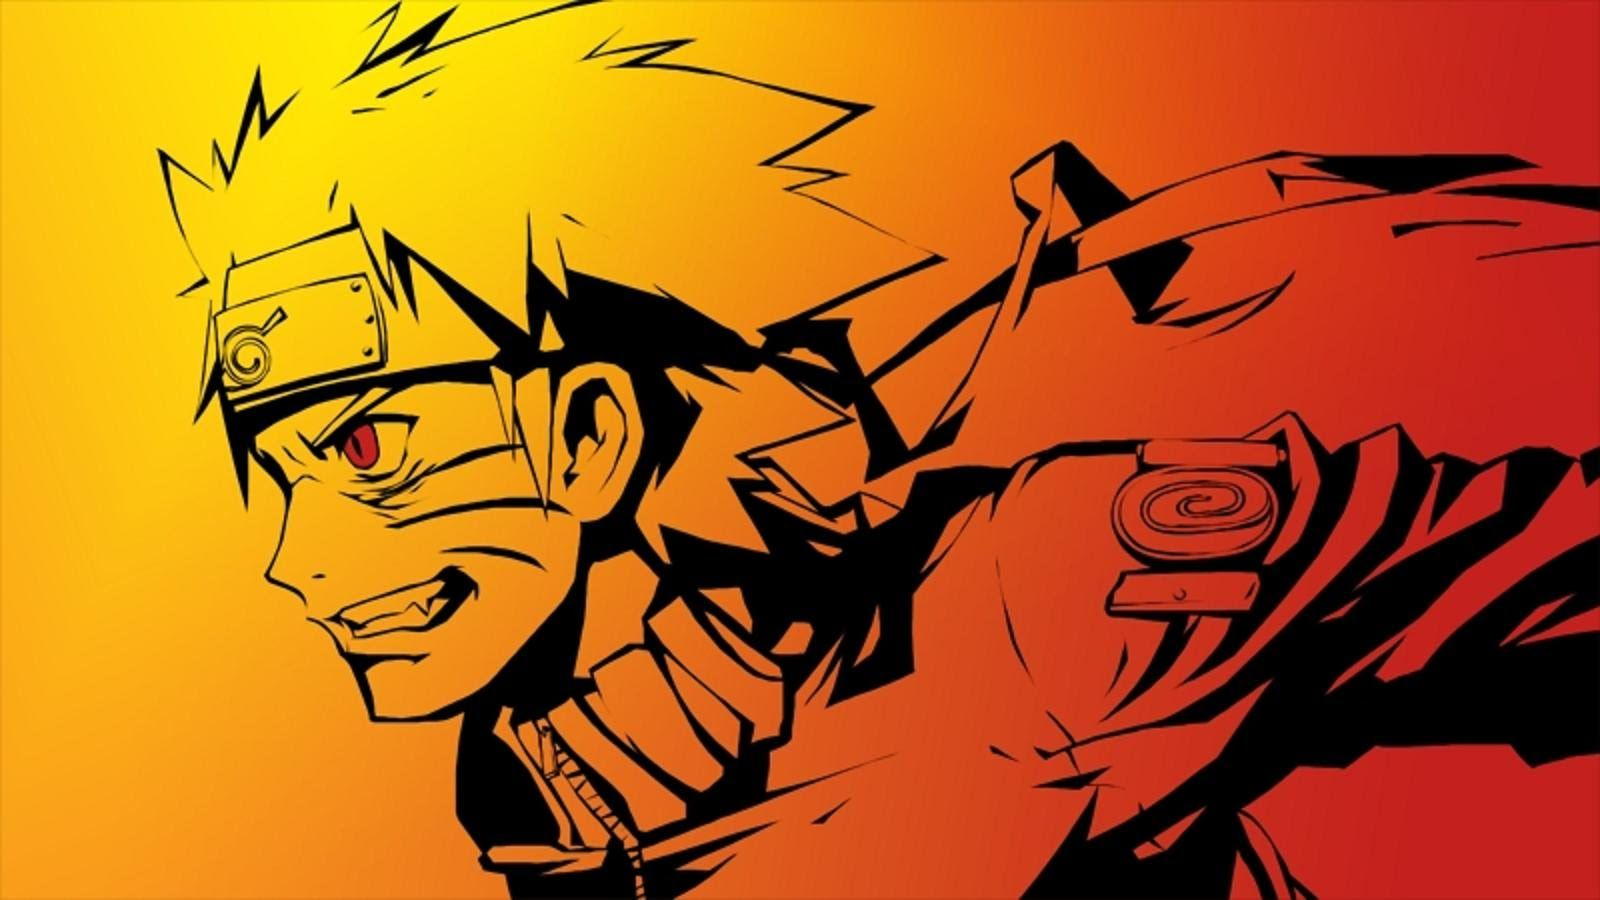 Dope Naruto Wallpapers Top Free Dope Naruto Backgrounds Wallpaperaccess